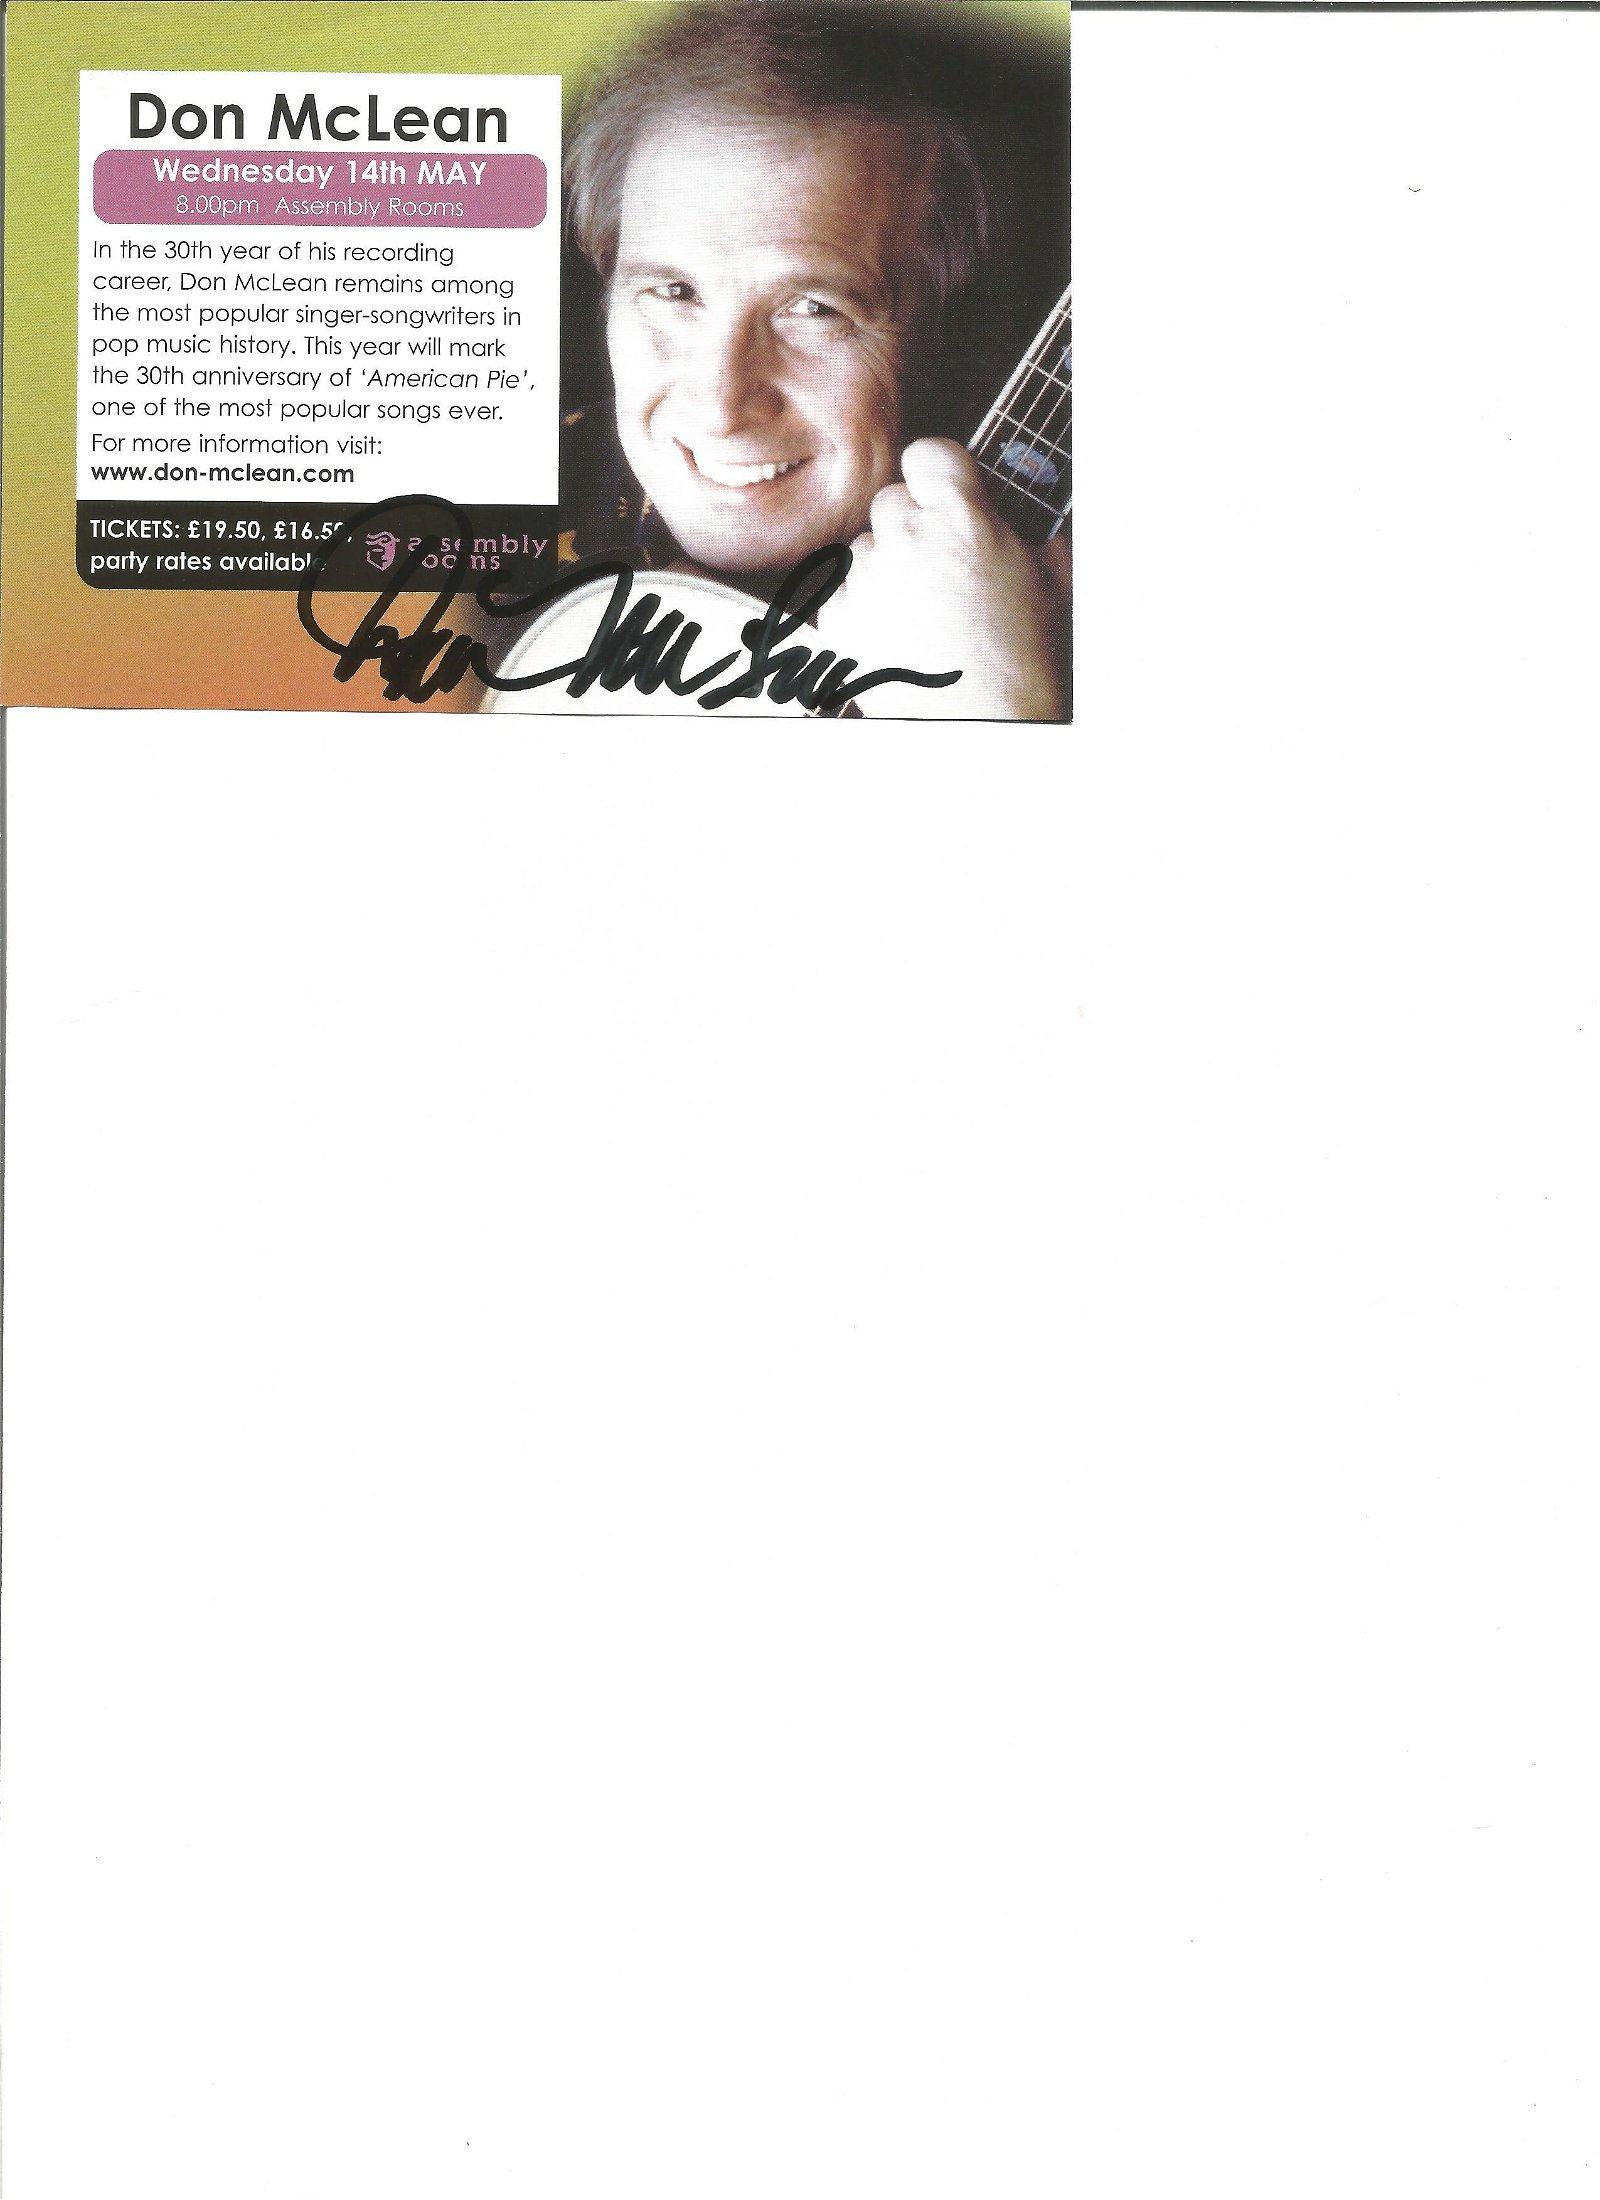 Don Mclean signed flyer. Good Condition. All signed